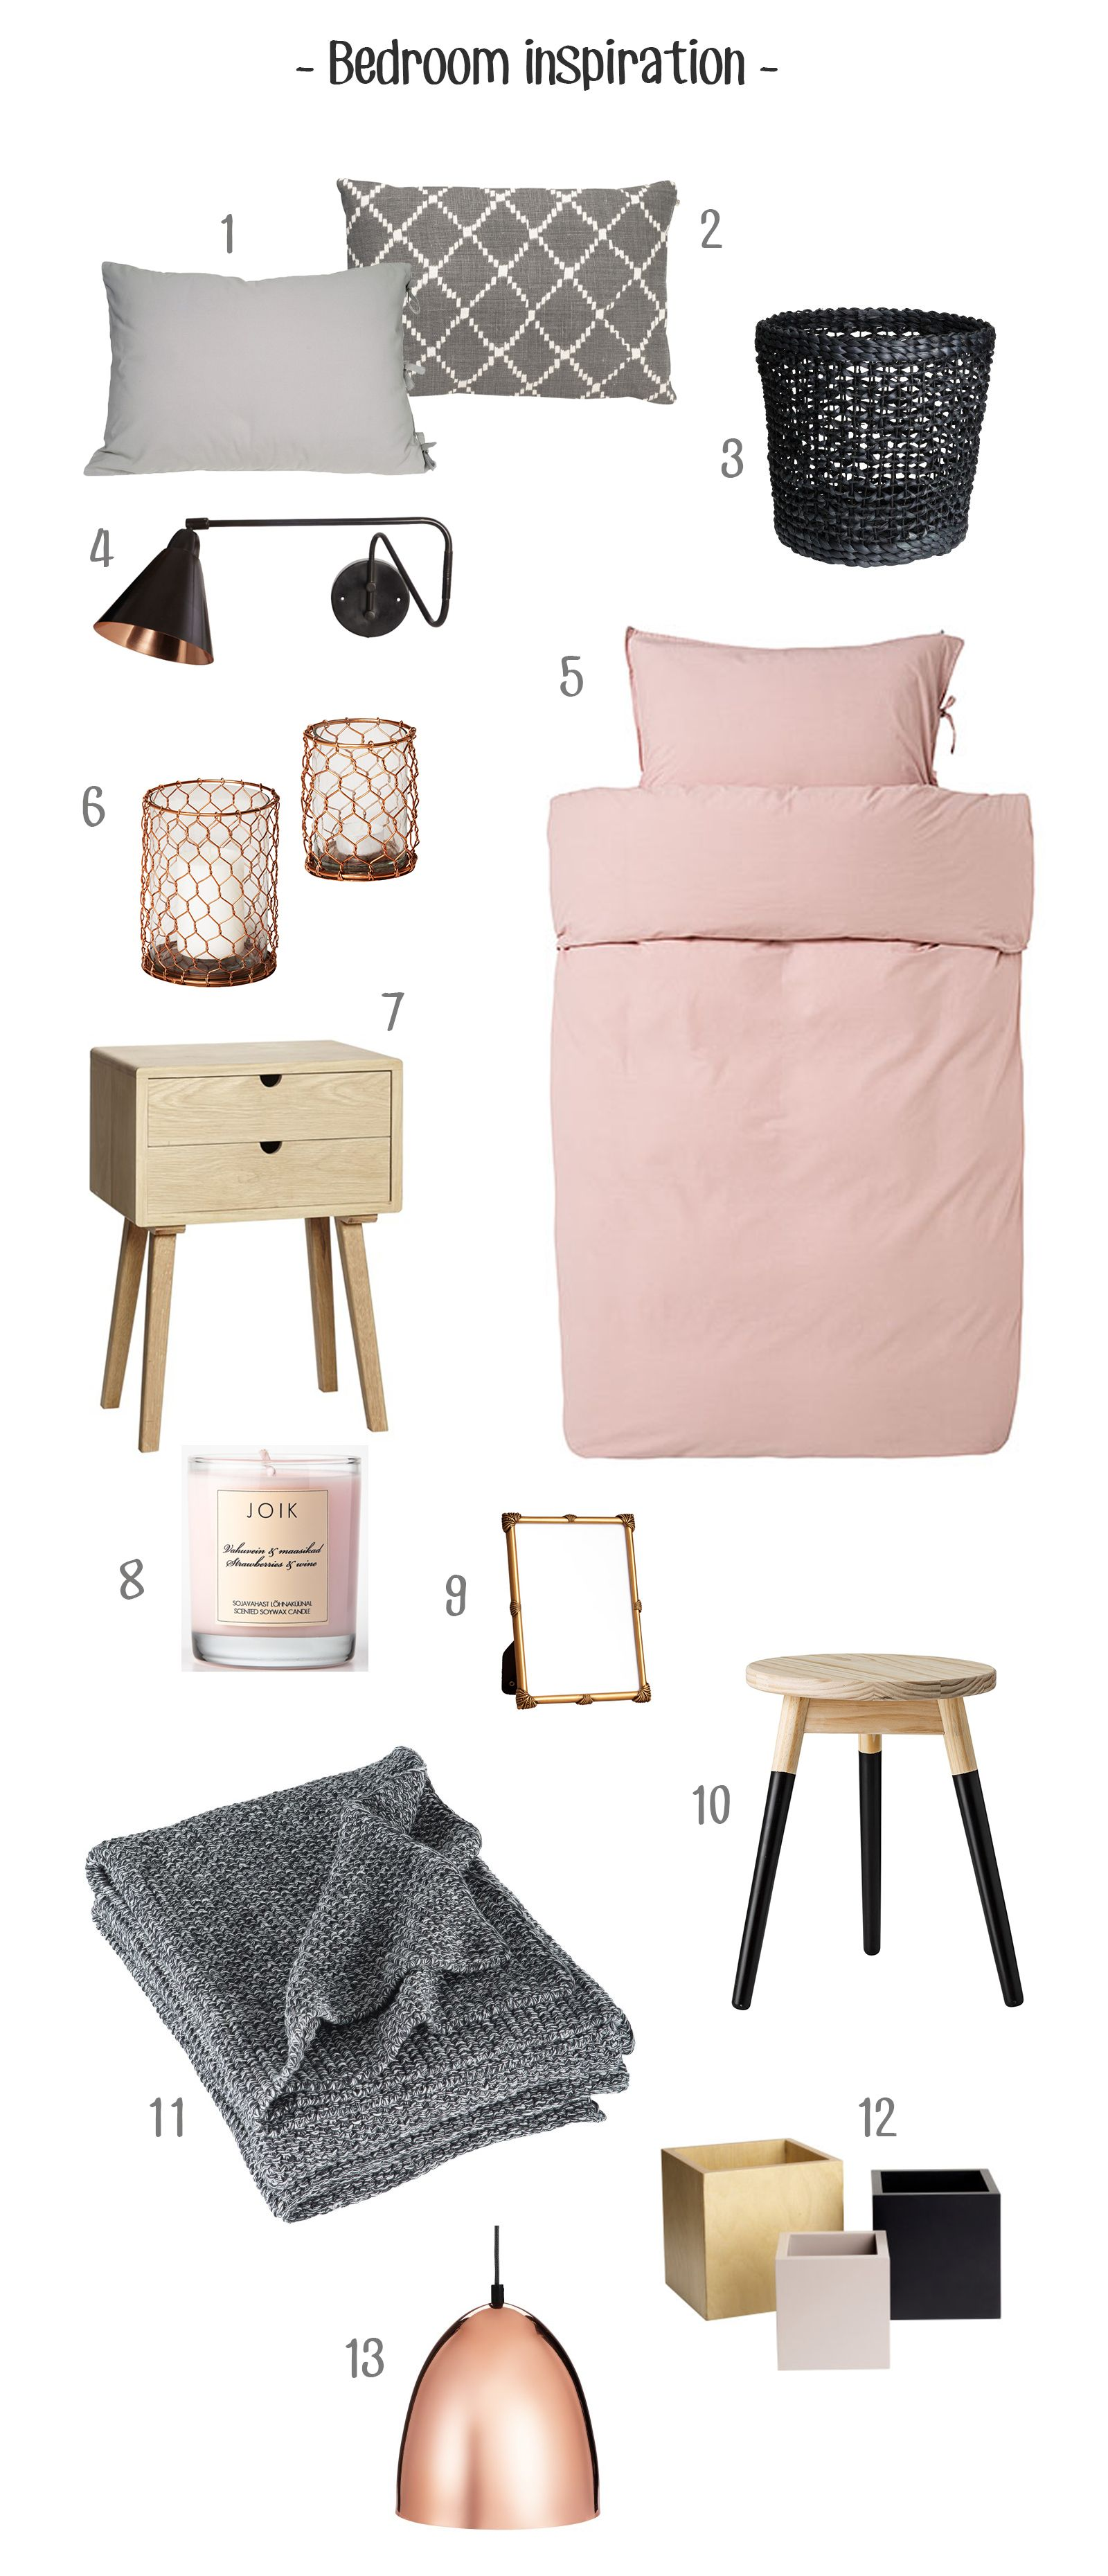 Best Bedroom Inspiration Mix Of Grey Black Soft Pink Copper 400 x 300